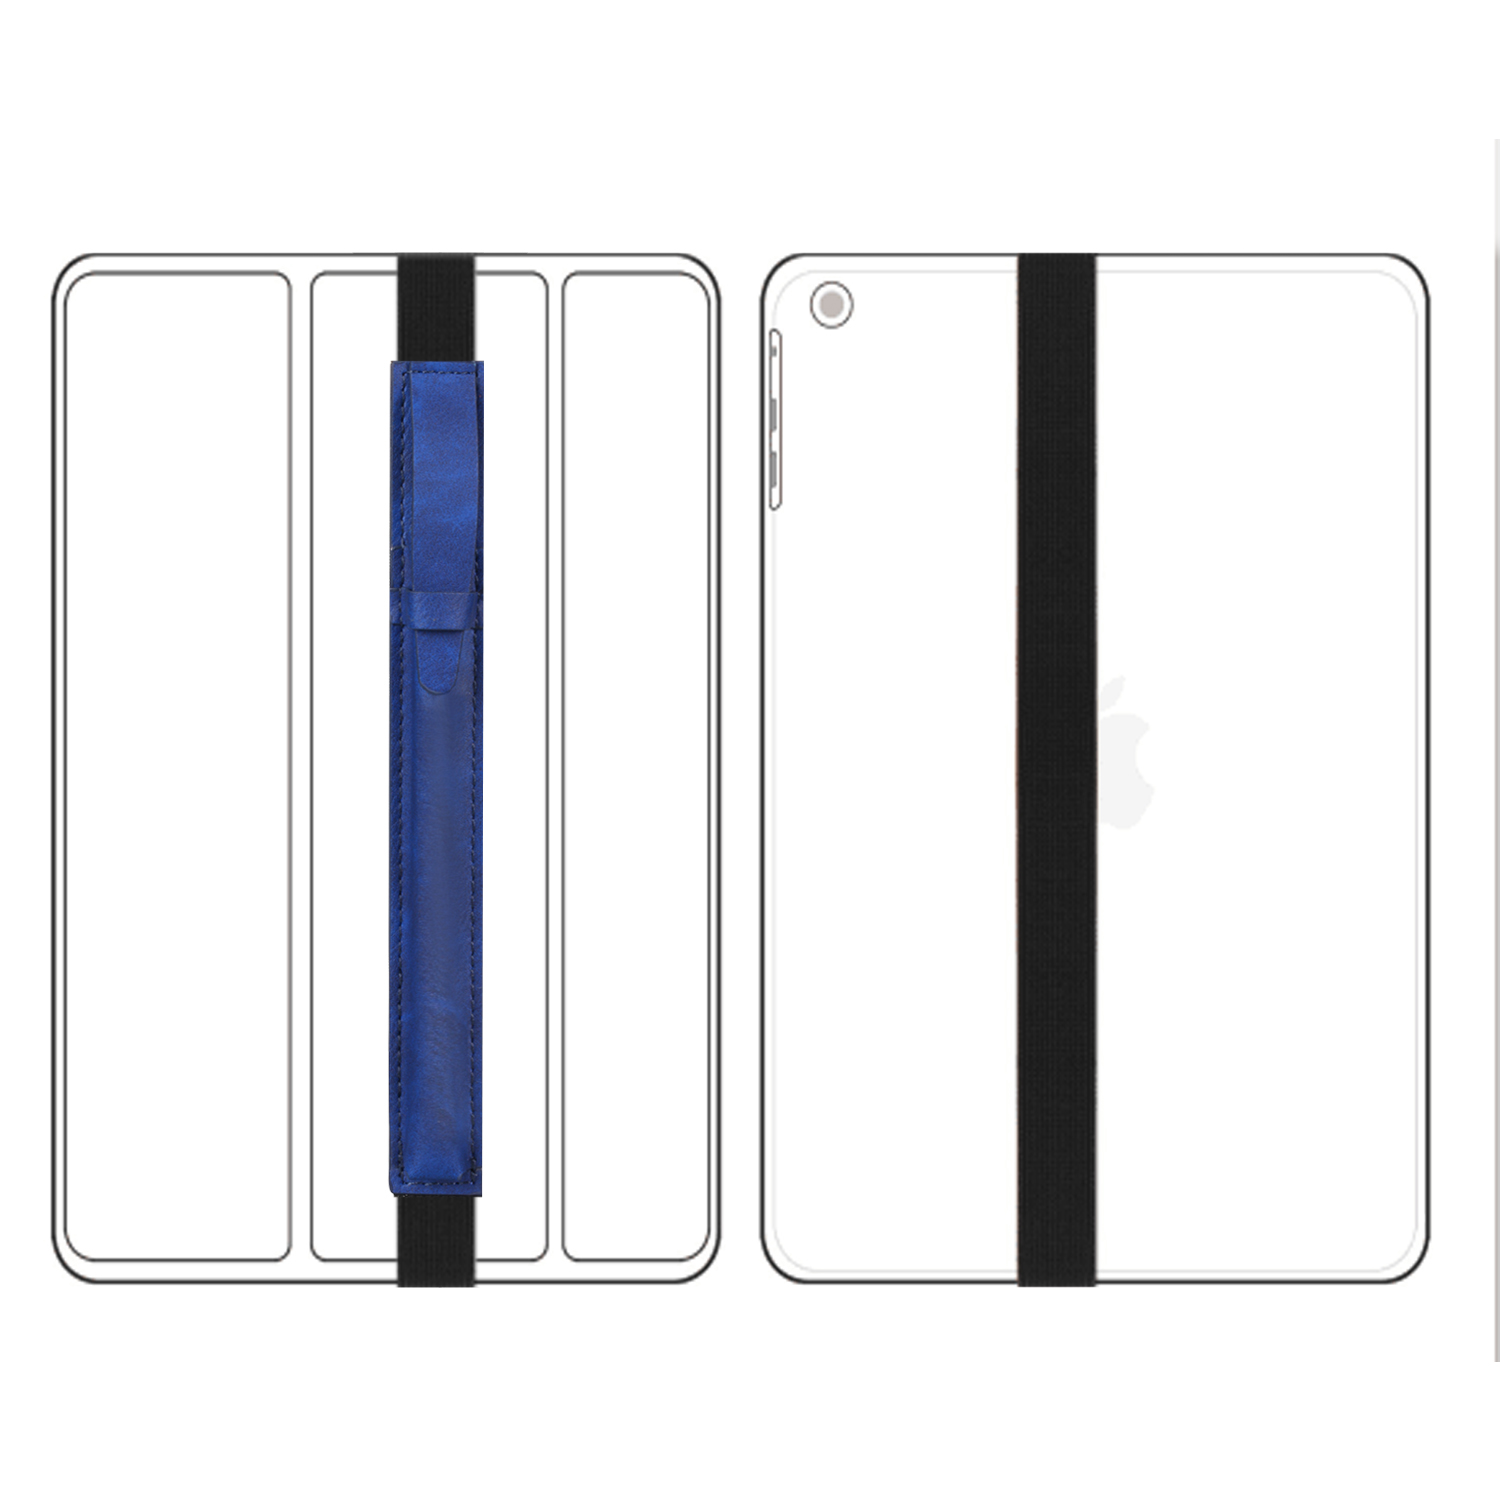 For-Apple-Pencil-Case-Leather-iPad-Pen-Cover-Sleeve-Pouch-Bag-Holder-Protector thumbnail 19